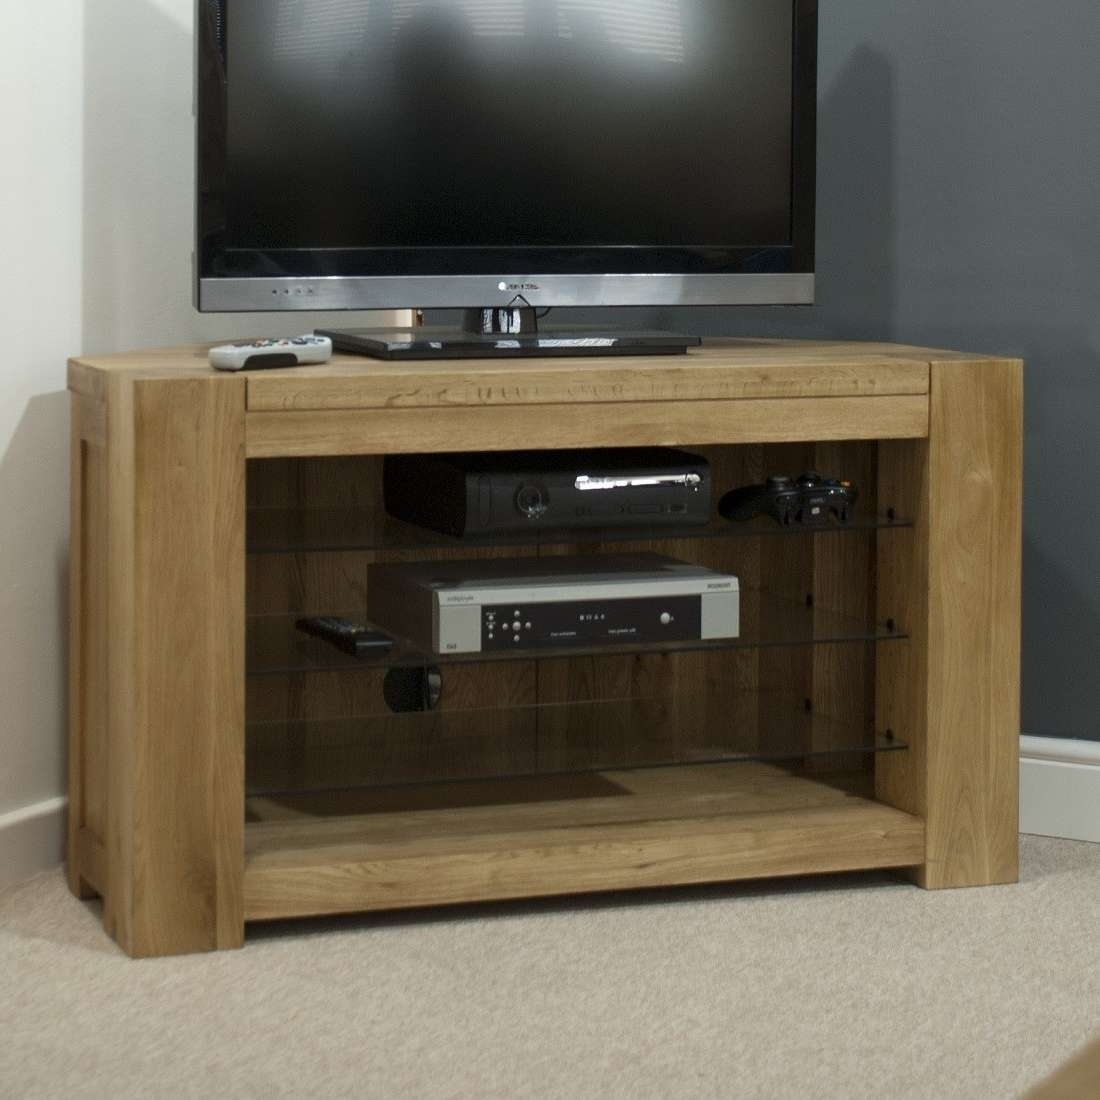 Trend Solid Oak Corner Tv Unit | Oak Furniture Uk Inside Small Oak Corner Tv Stands (View 13 of 15)